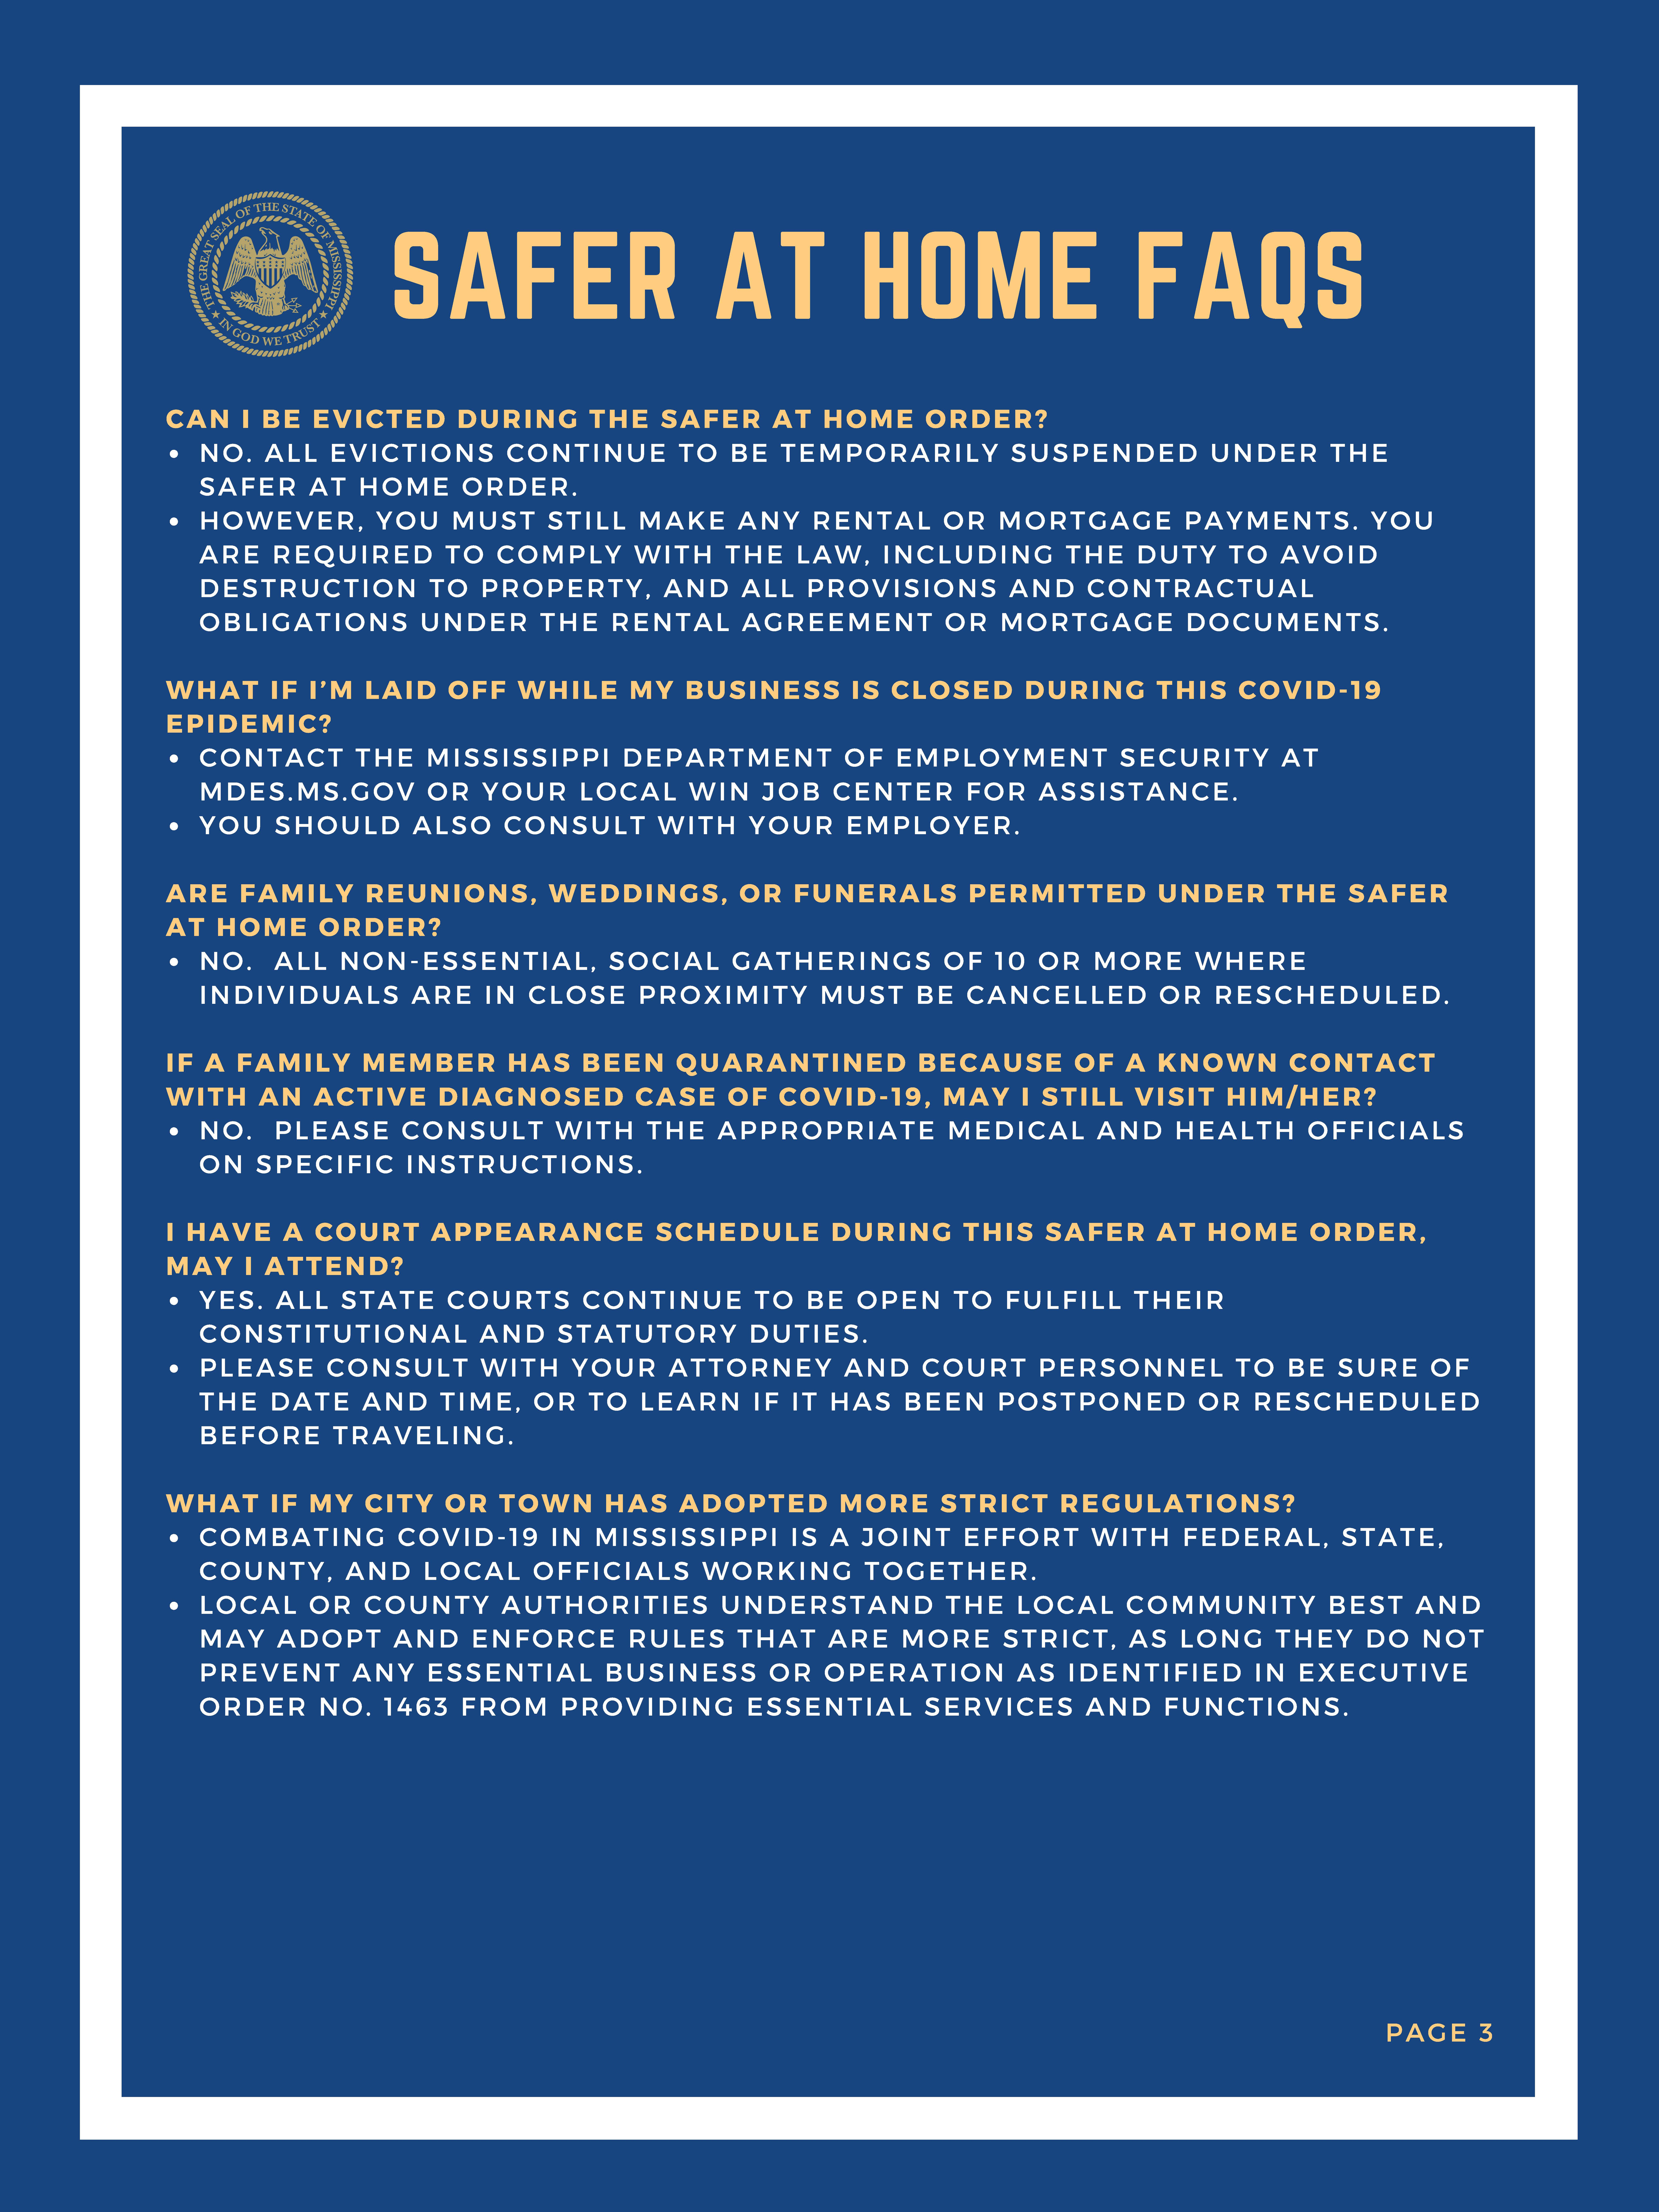 Safer at Home FAQs_Page_3.jpg